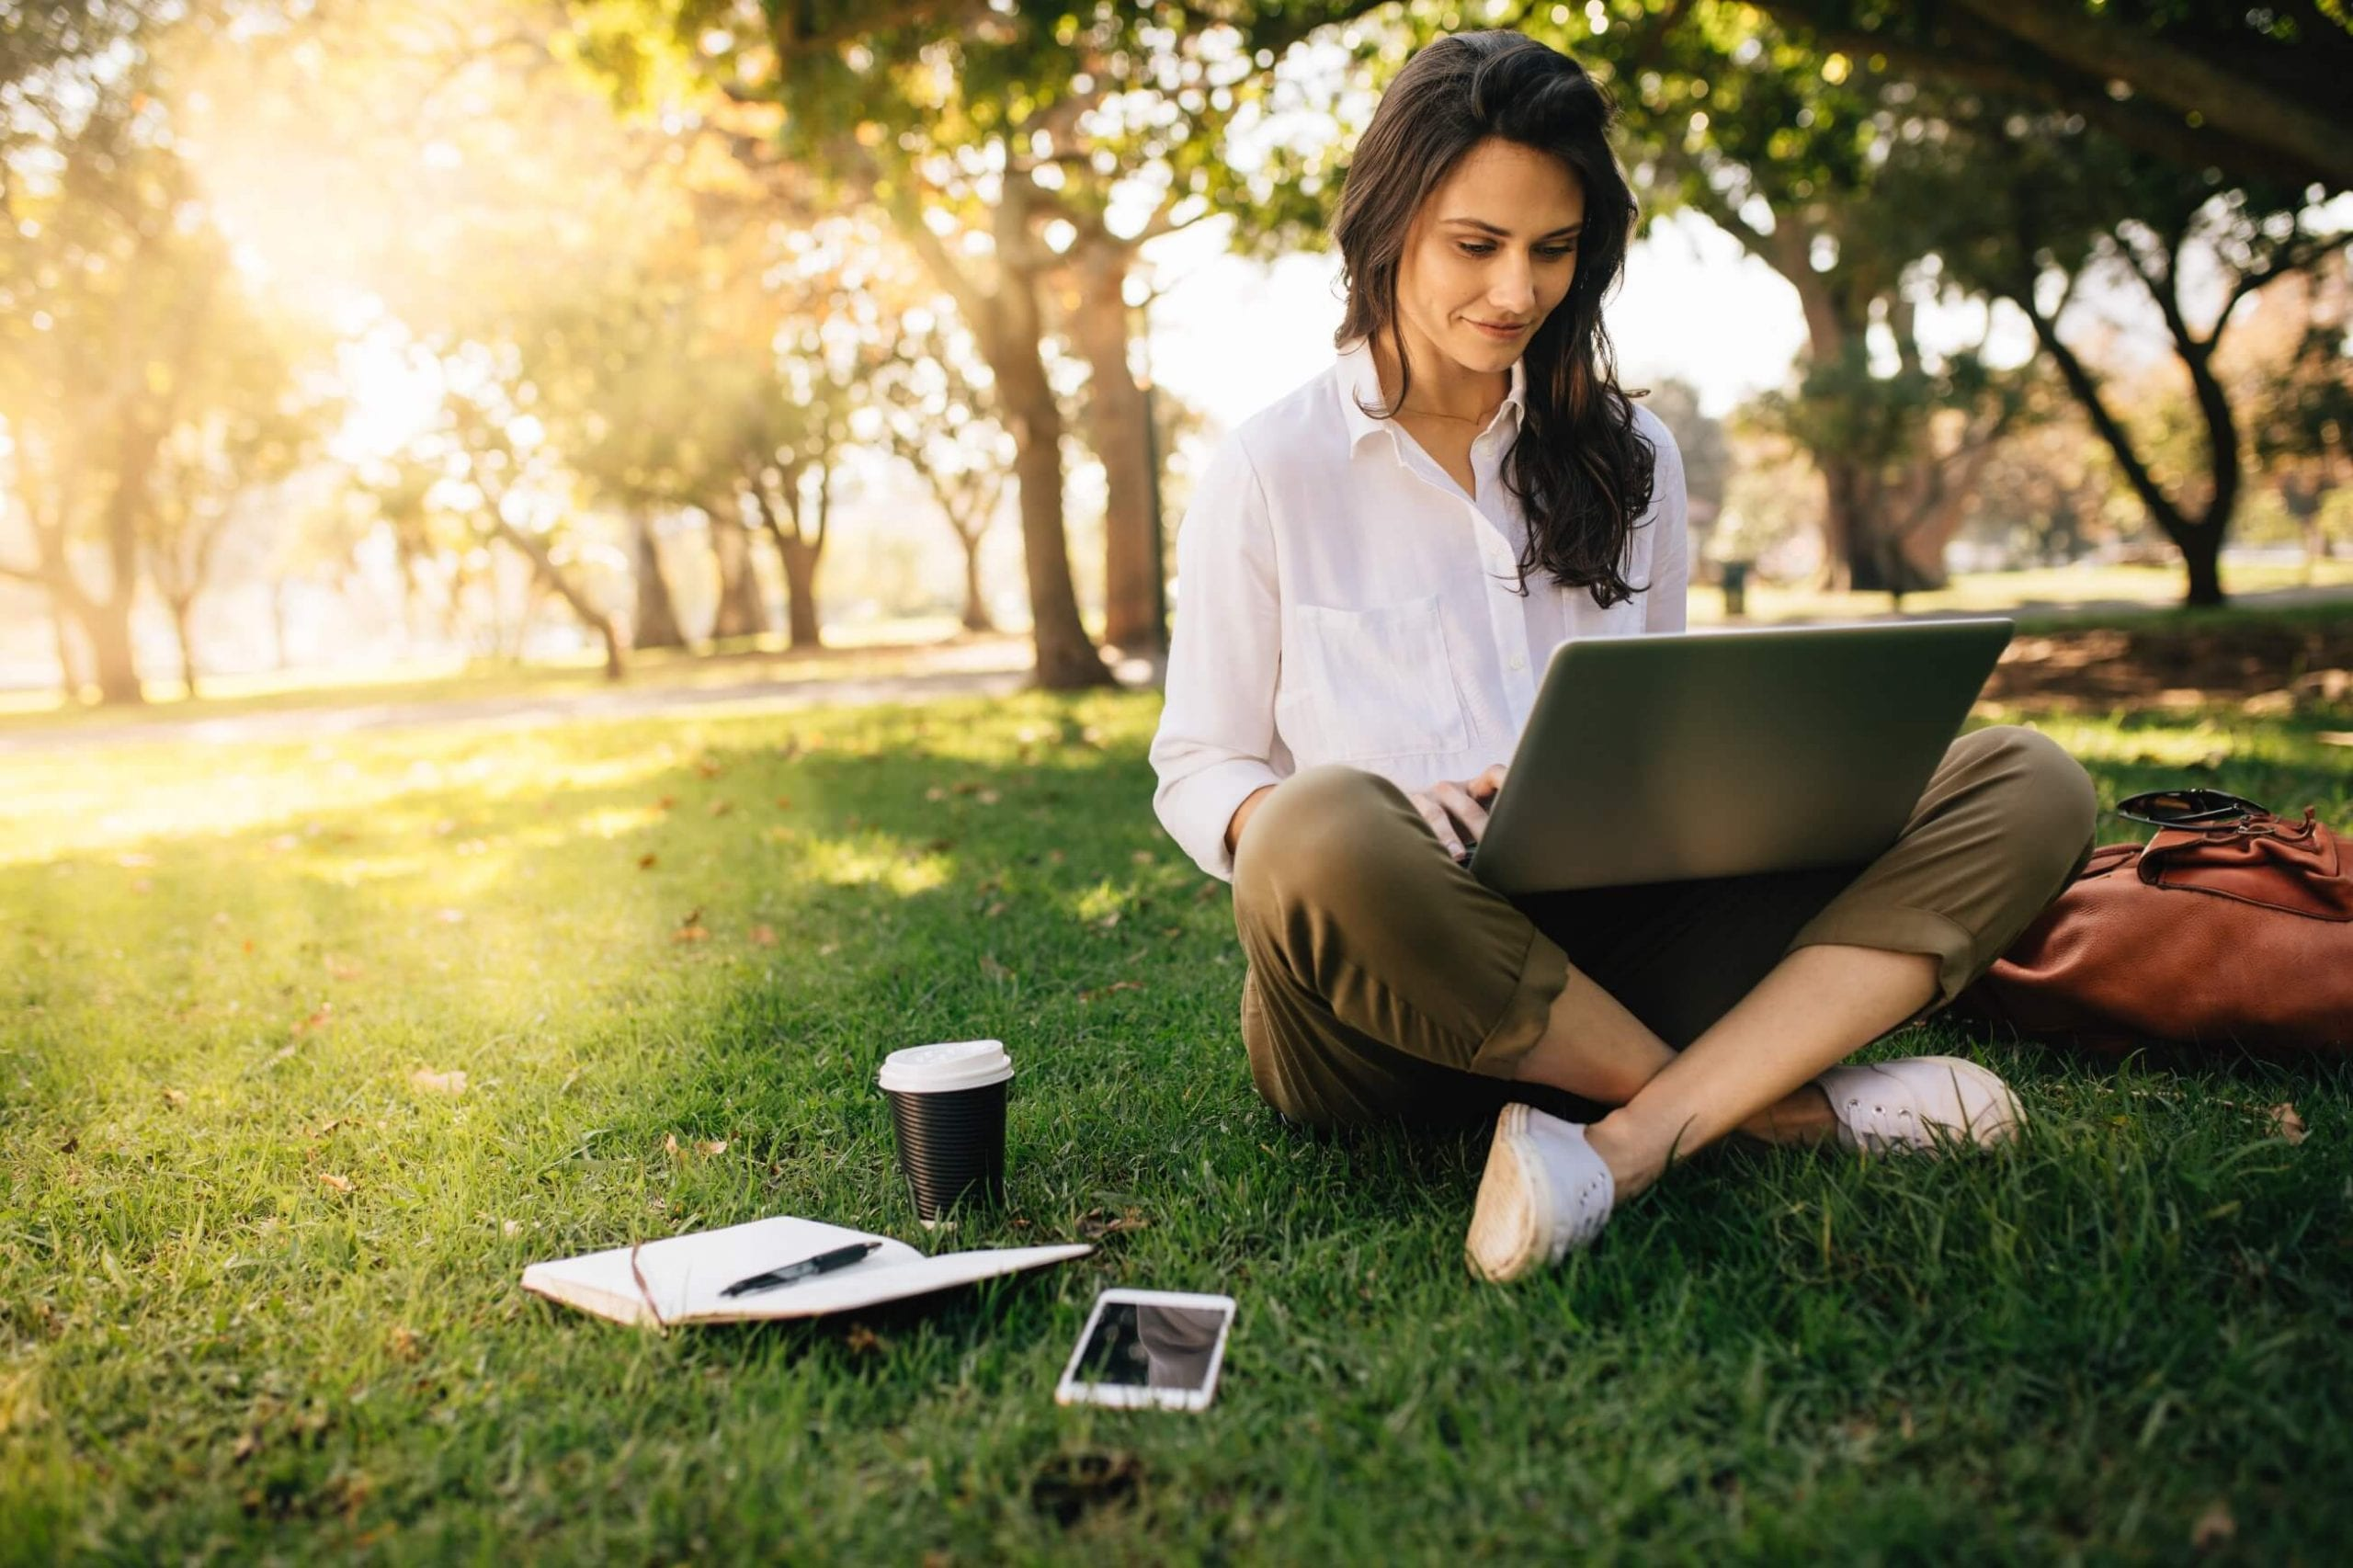 The 5 Best Chicago Suburbs if You Work From Home